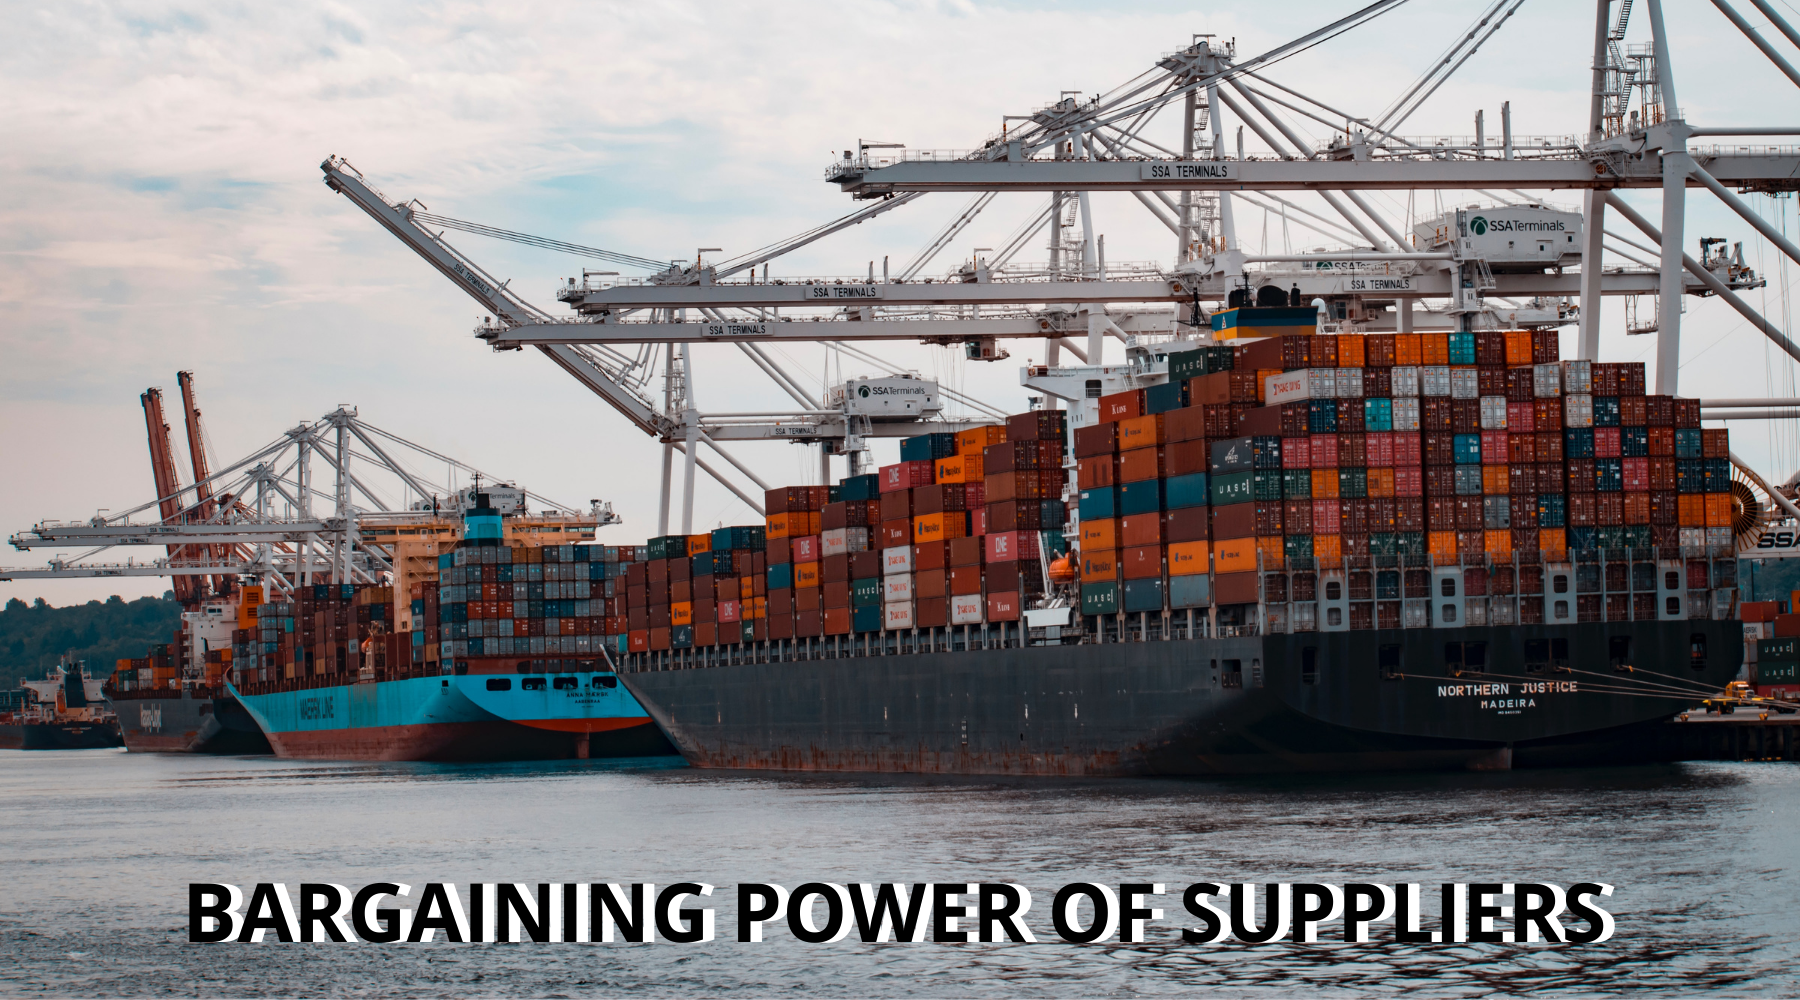 What Is Bargaining Power Of Suppliers And How Does It Affect Your Business